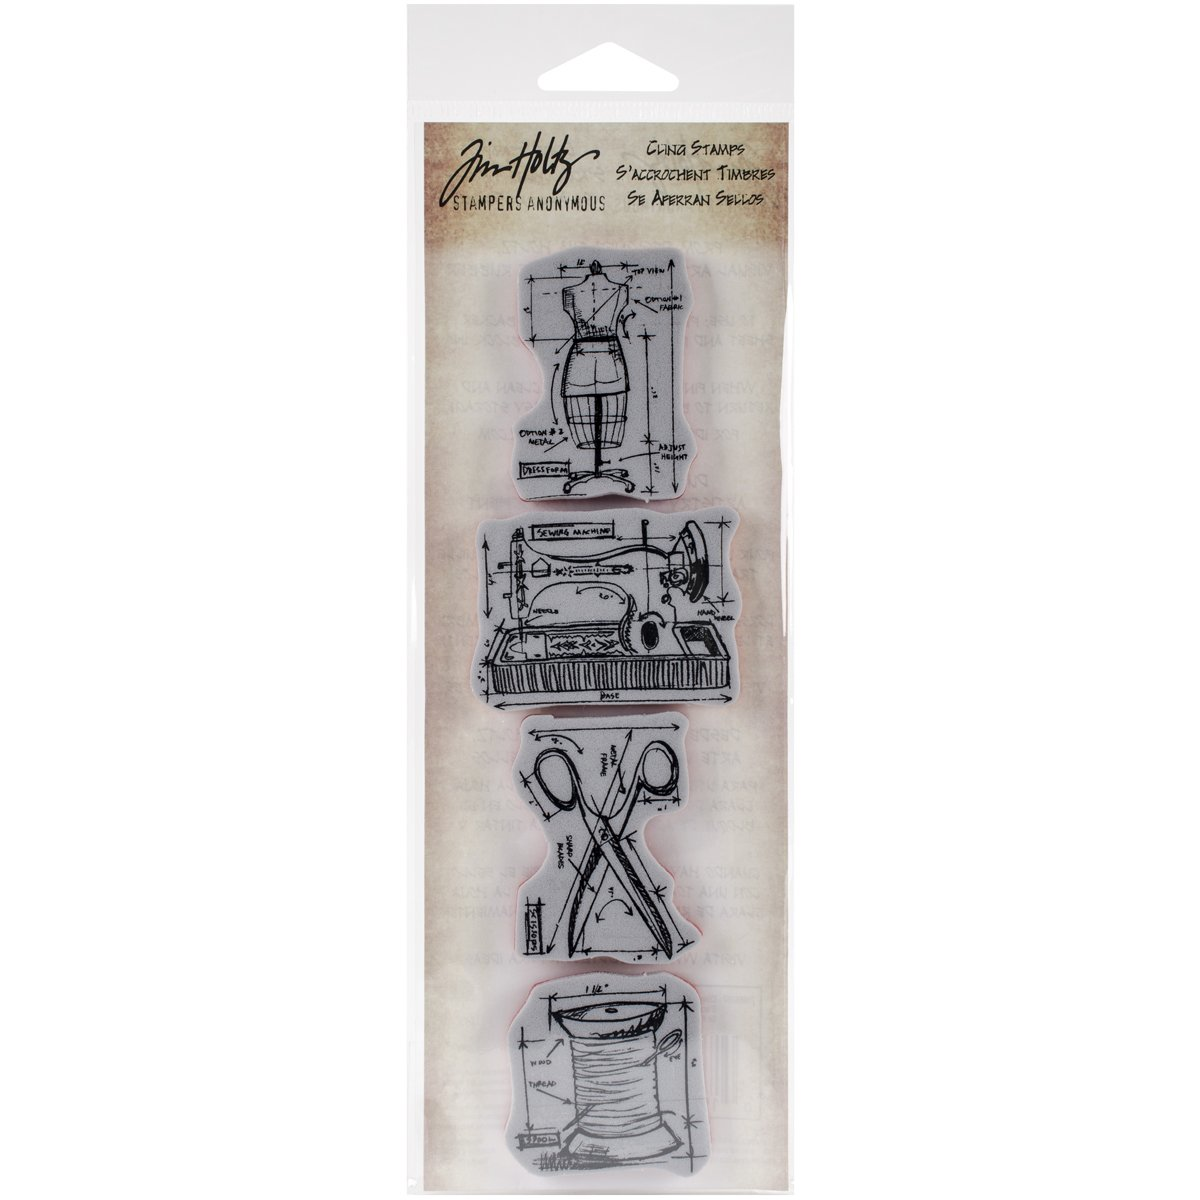 Stampers Anonymous Tim Holtz Mini Blueprints Strip Cling Rubber Stamps, 3 by 10, Sewing 3 by 10 MB-7